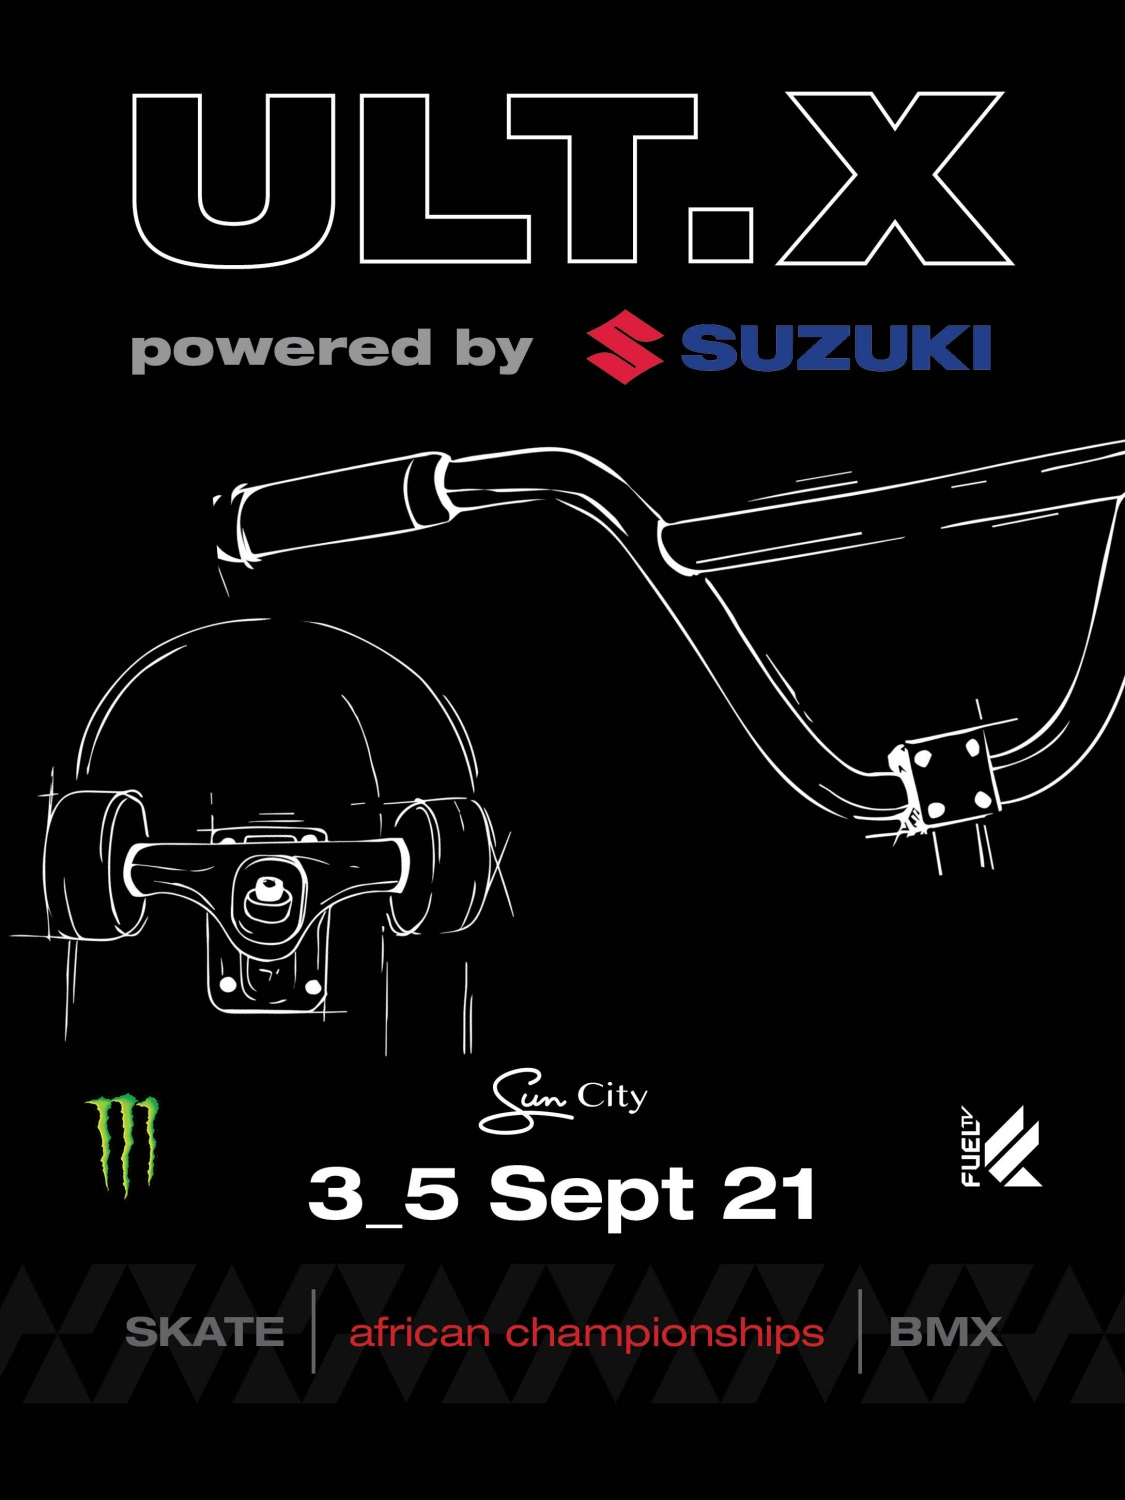 Action Sports returns to Sun City with ULT.X 2021 and the African BMX and Skateboarding Championships